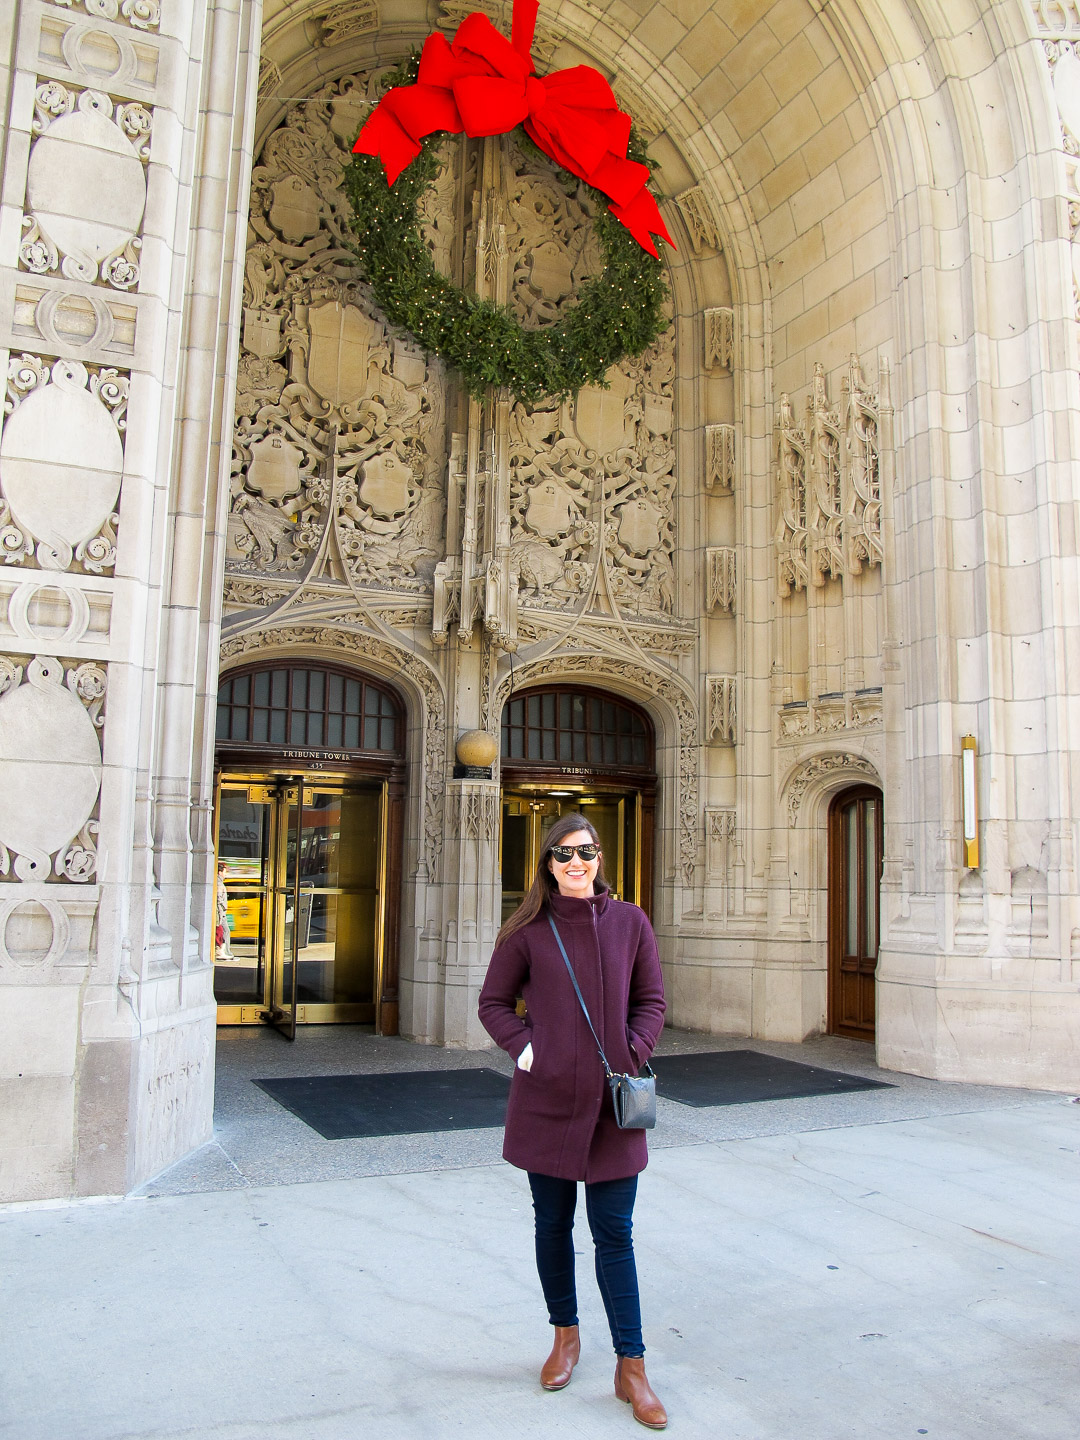 In front of my old office building- The Tribune Tower!